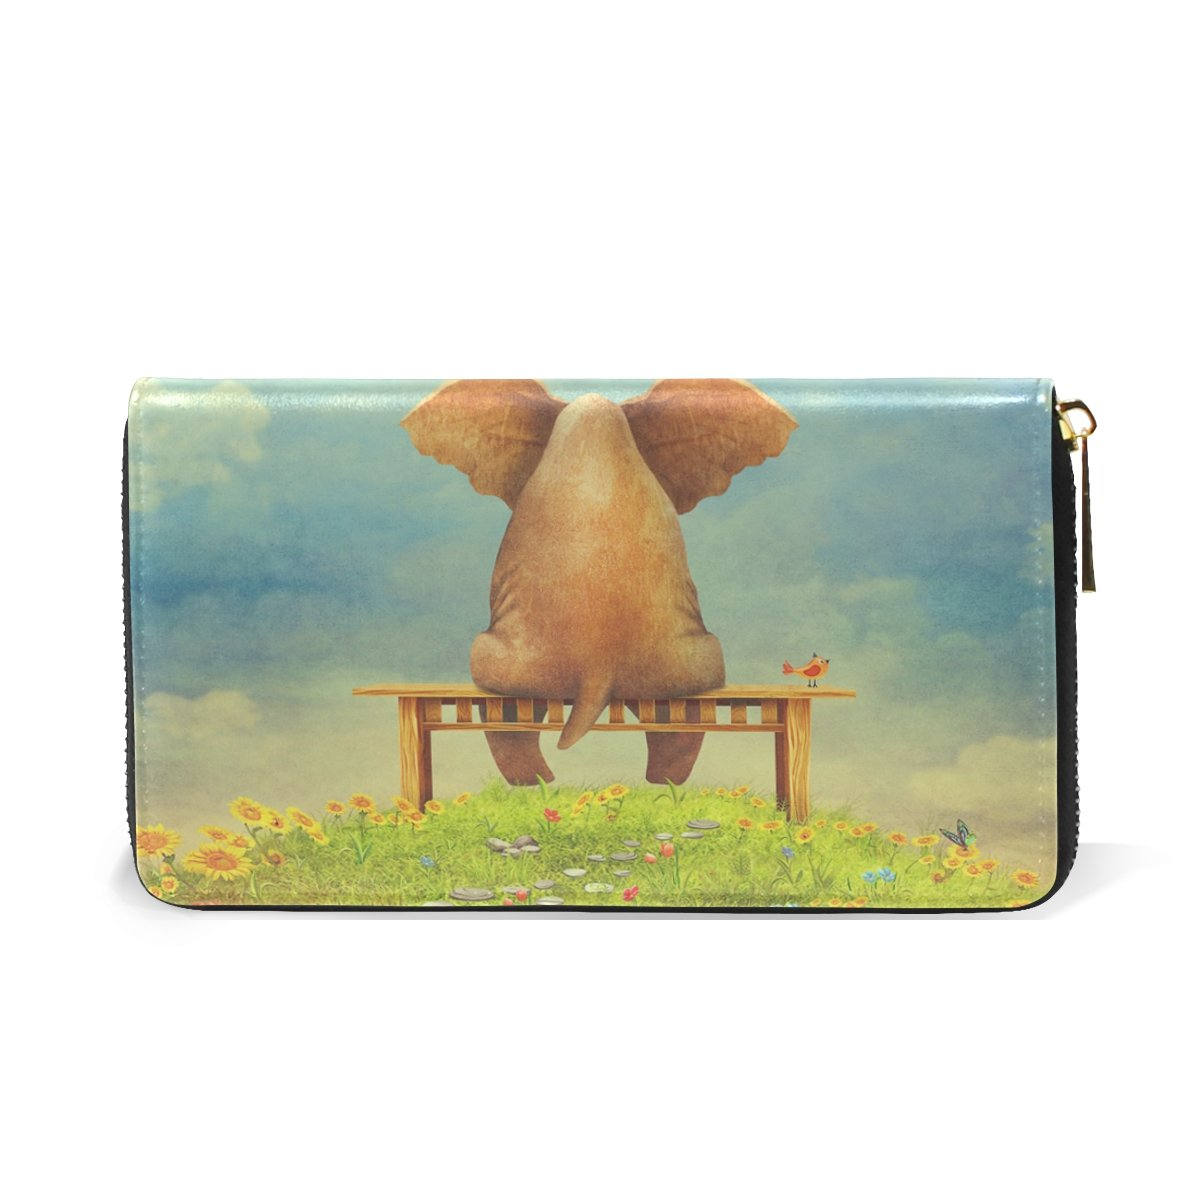 MAPOLO Sad Elephant Sitting On Bench The Glade Print Womens Clutch Purses Organizer And Handbags Zip Around Wallet